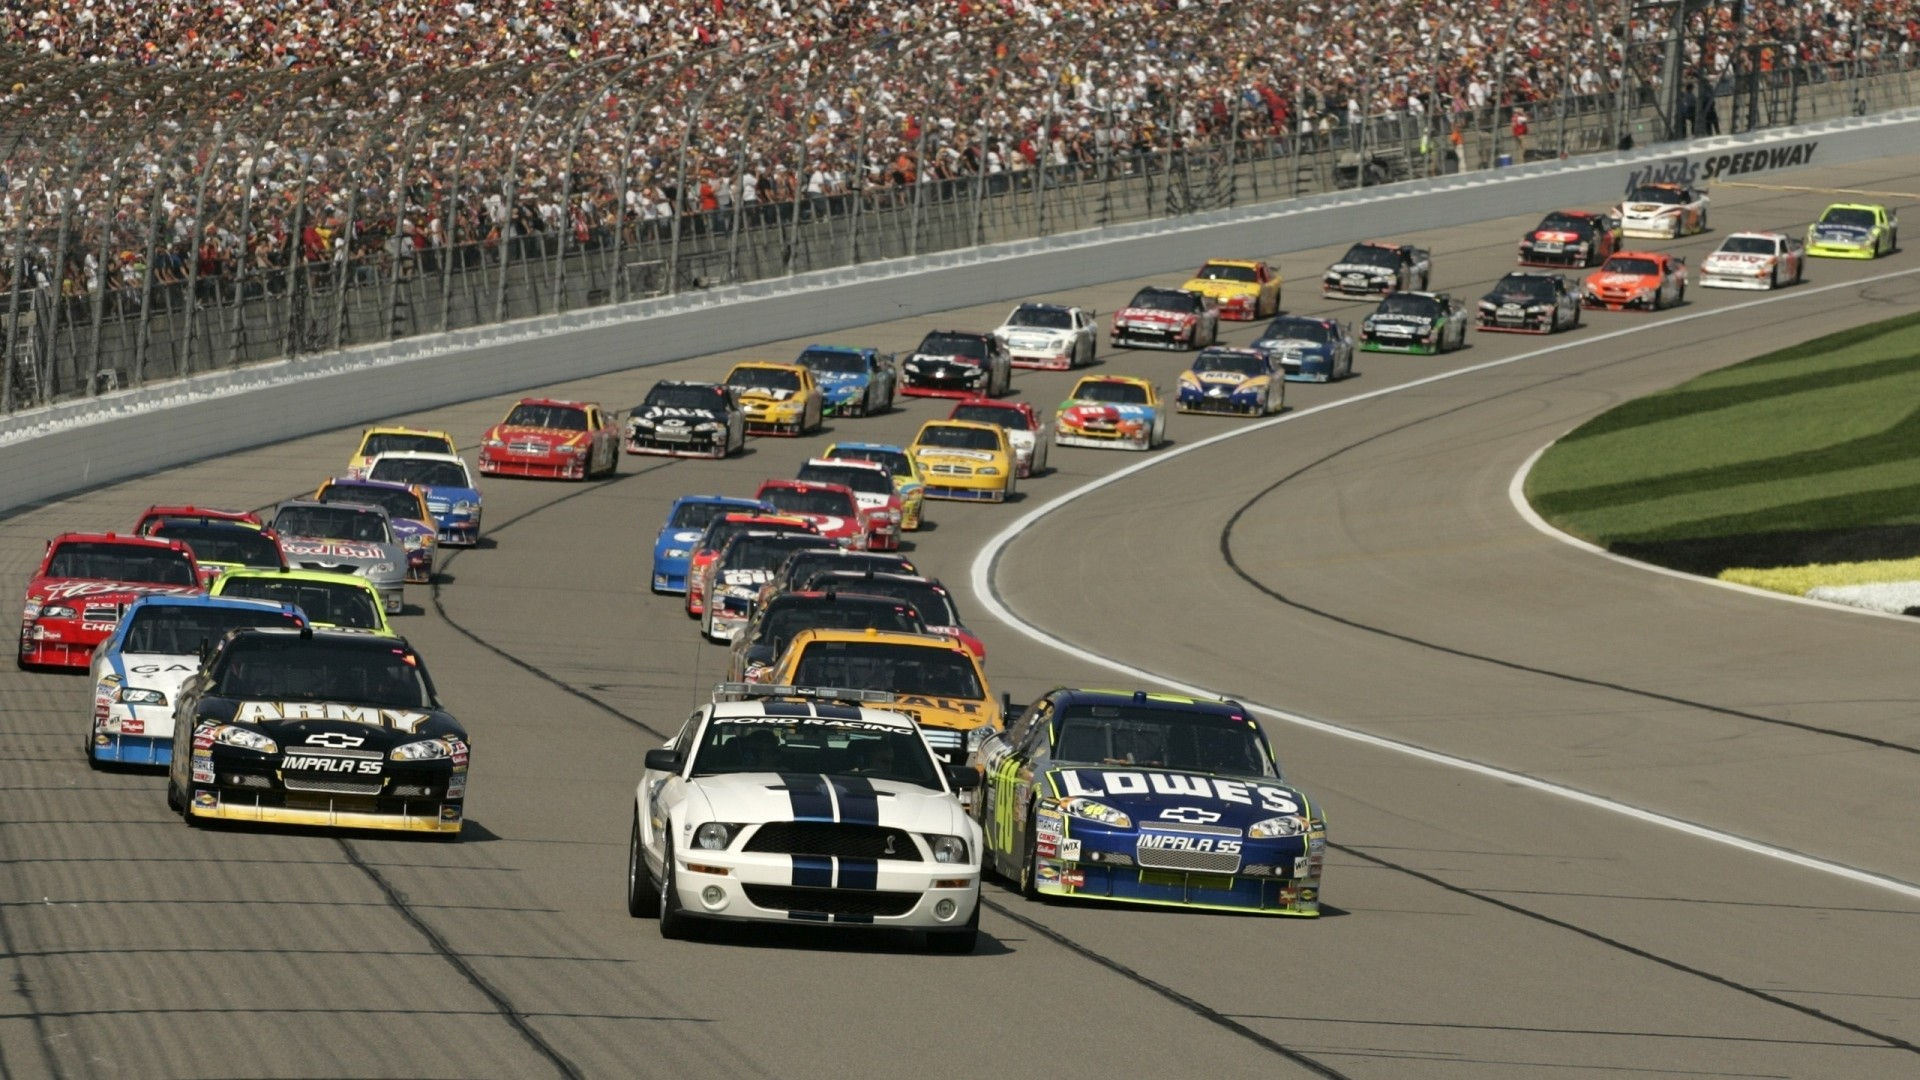 1920x1080 Preview wallpaper grandstand, track, america, cars, nascar, background, people